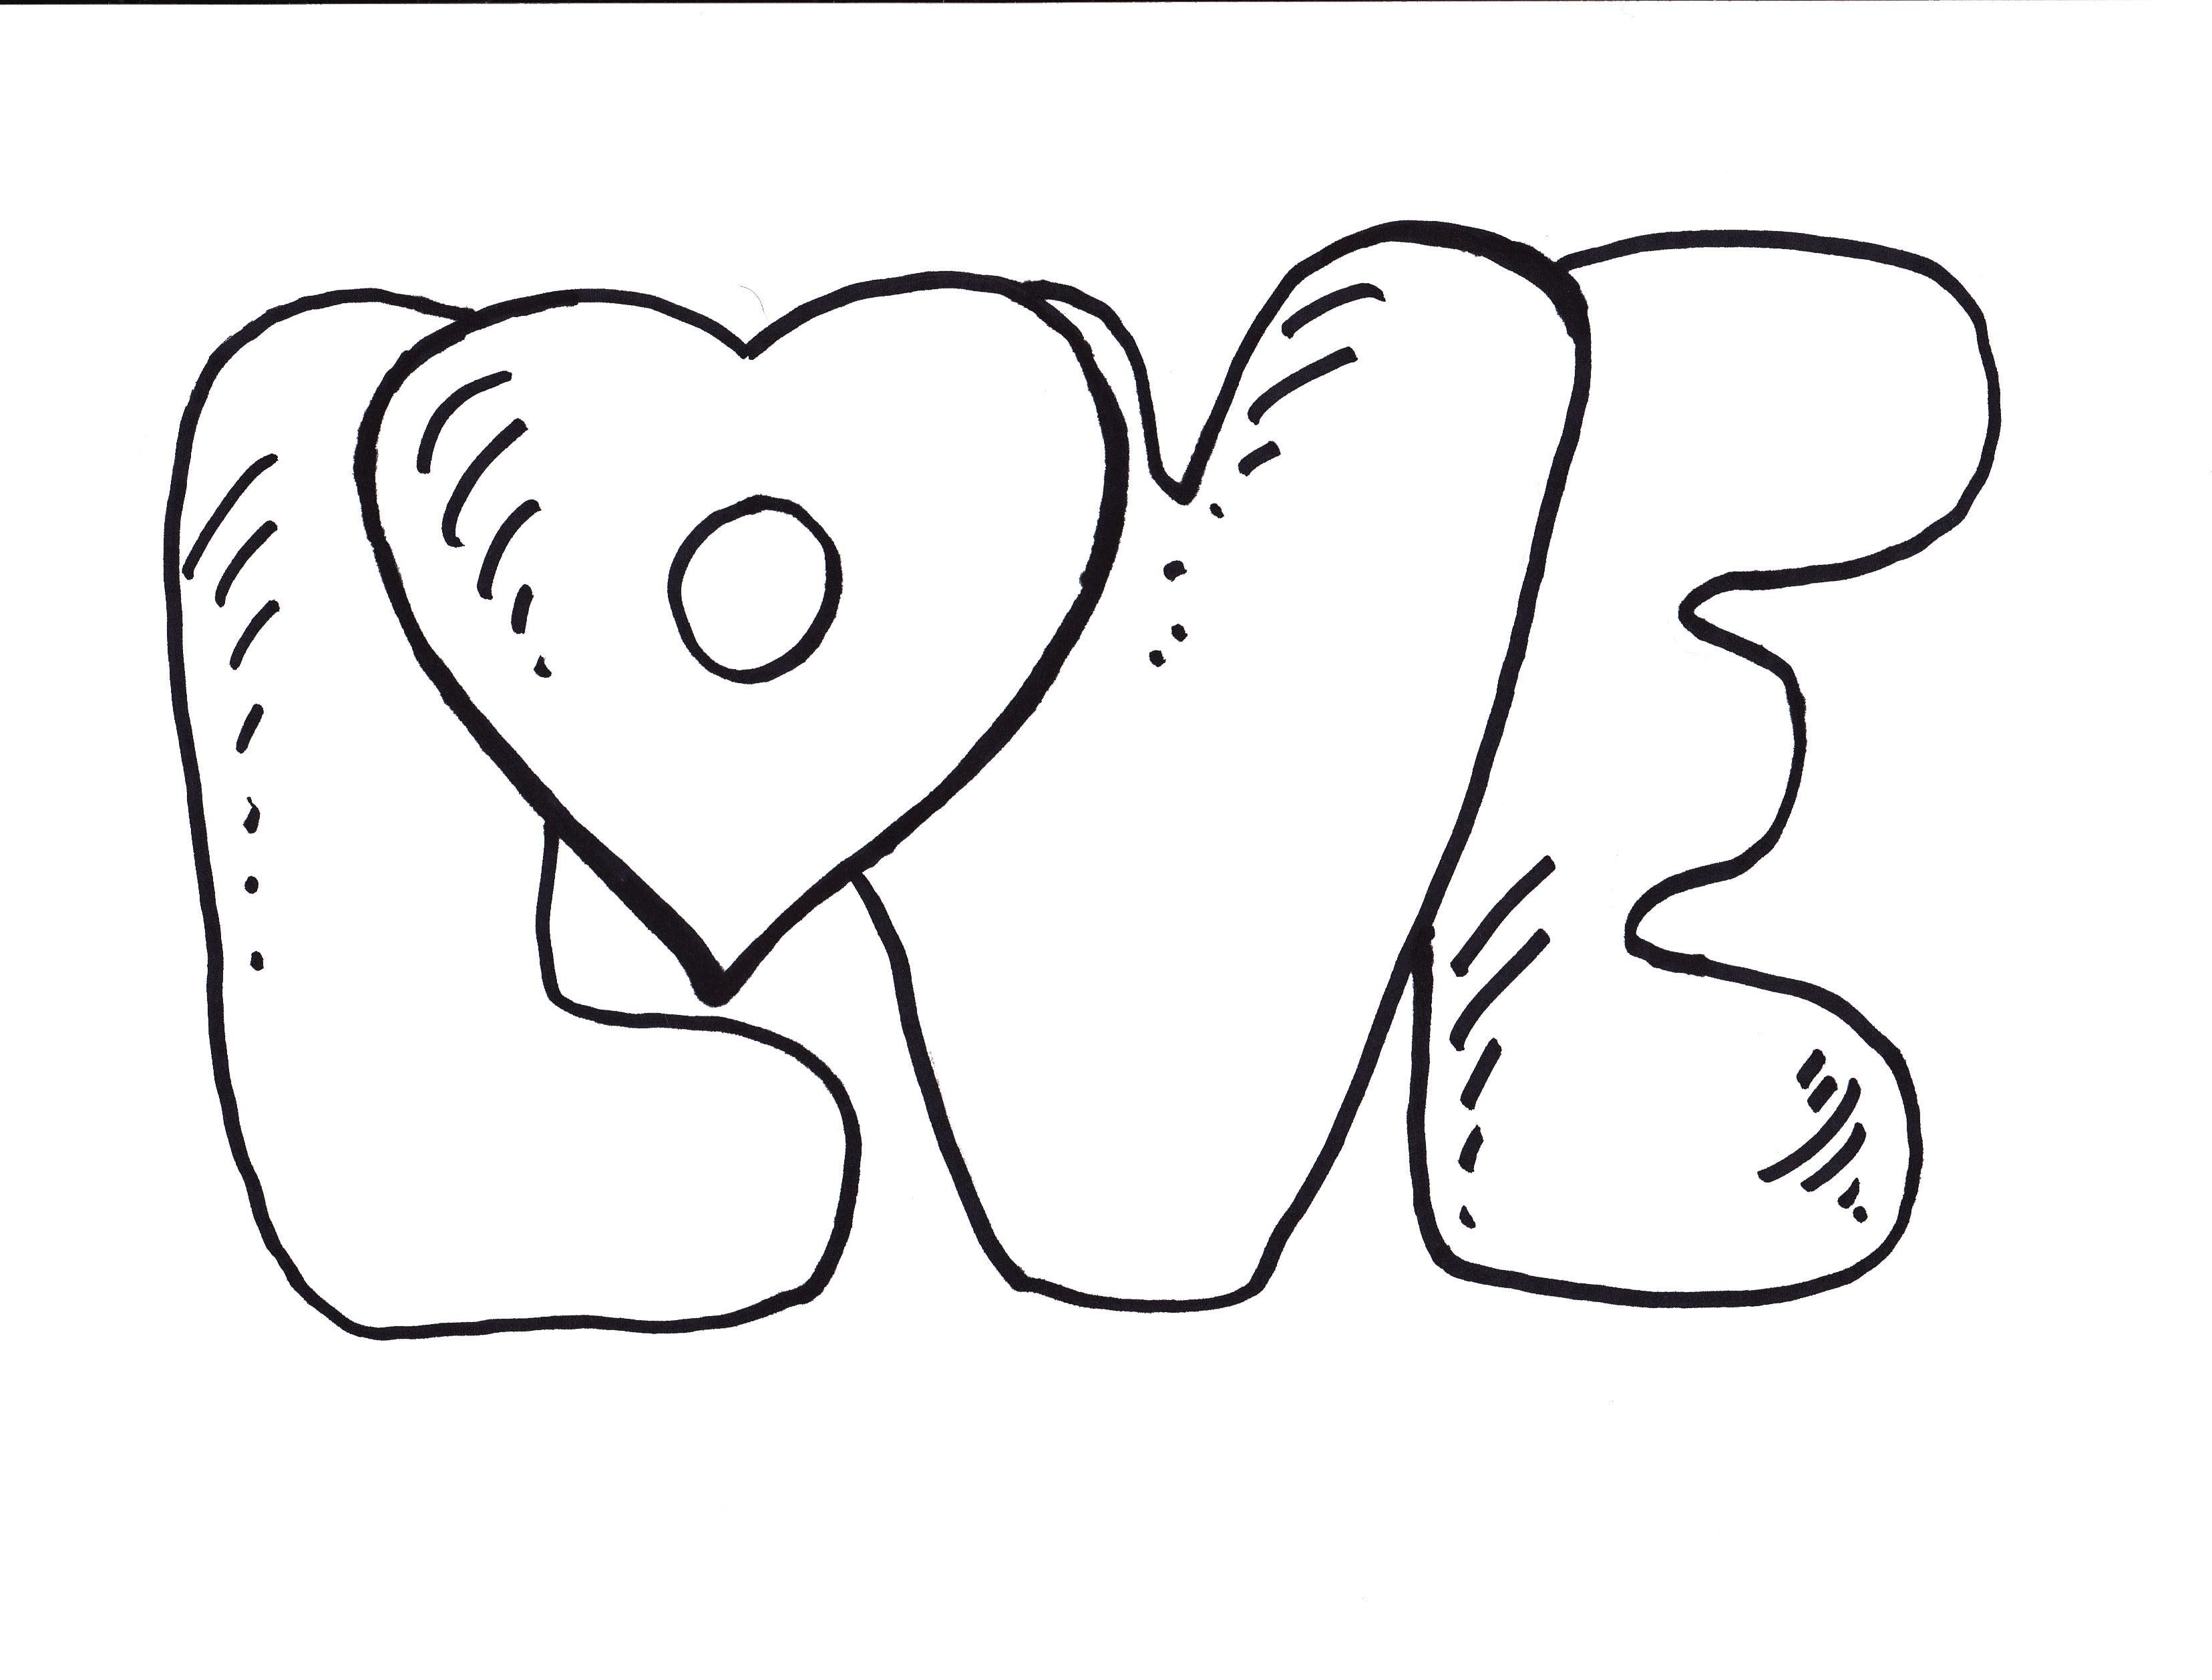 Coloring pages of the word love